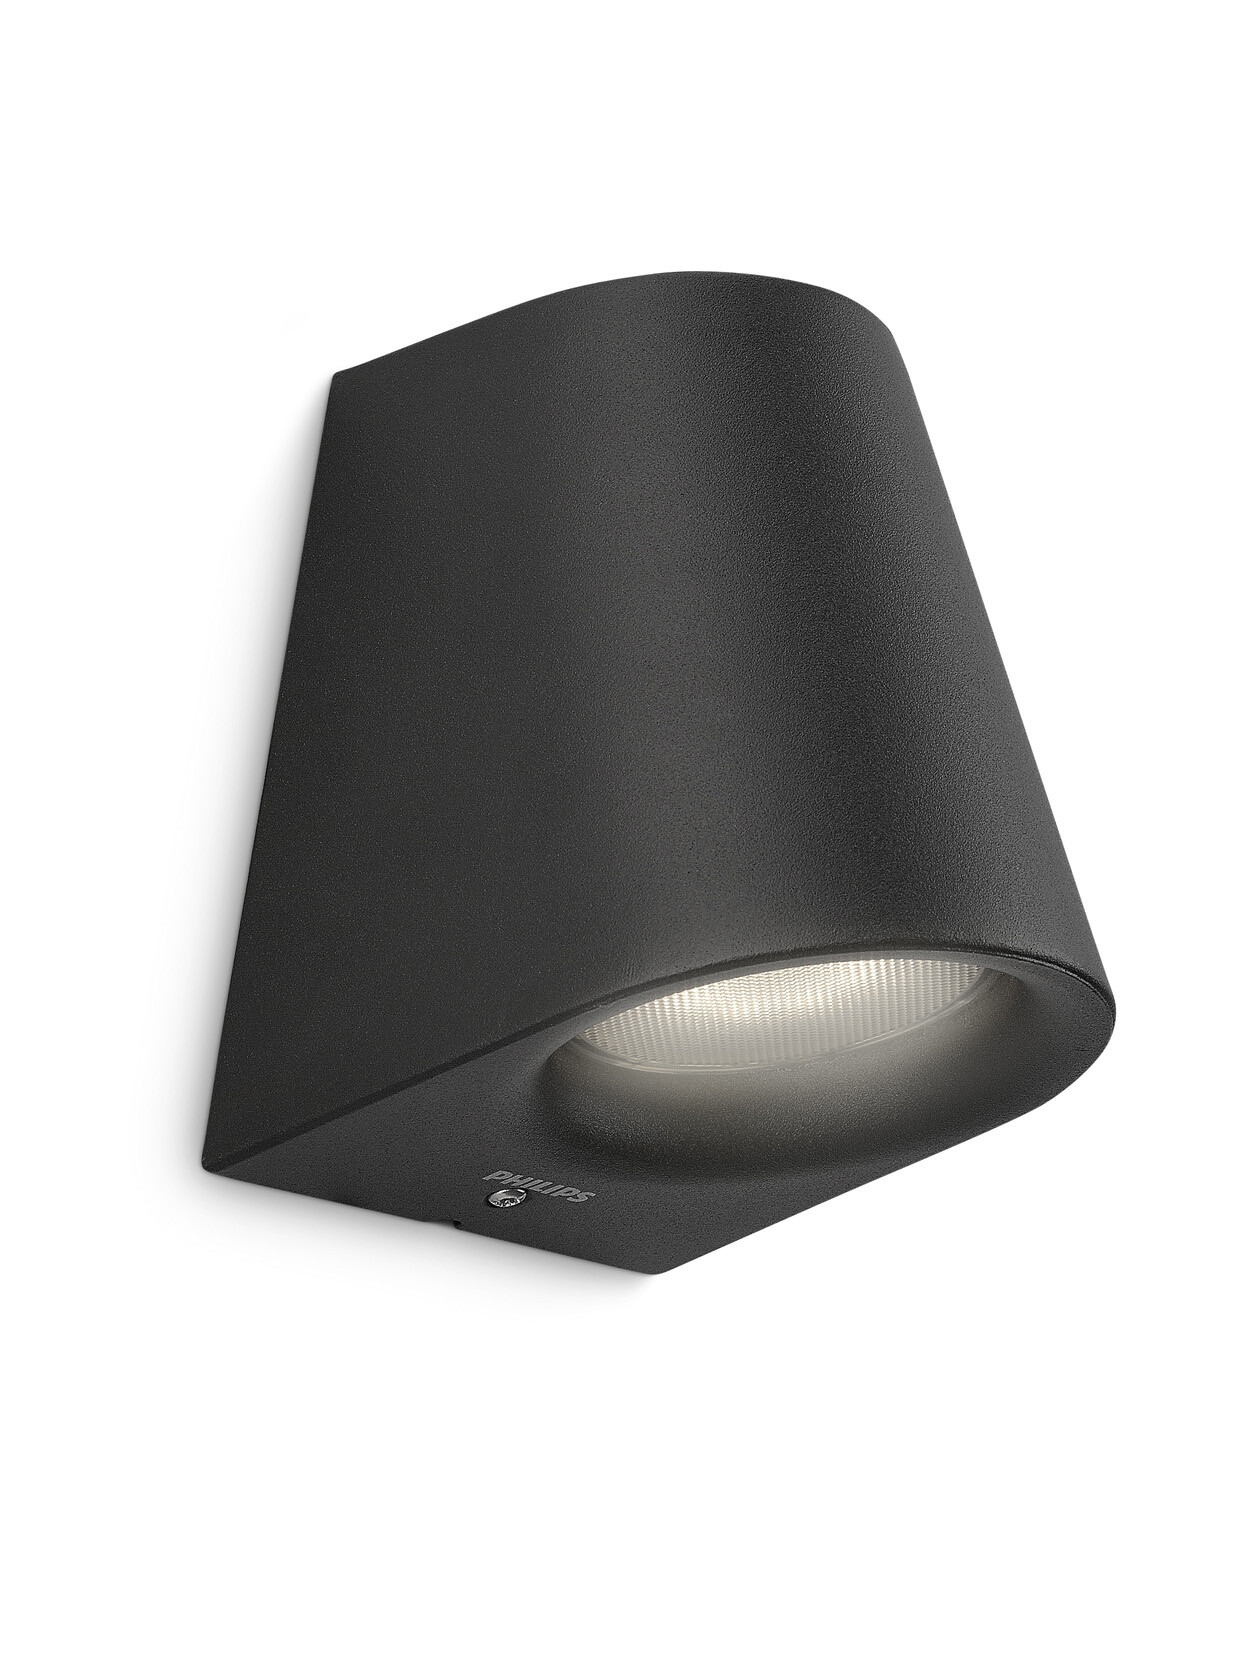 Philips VIRGA Applique LED 1x4W/270lm Noir